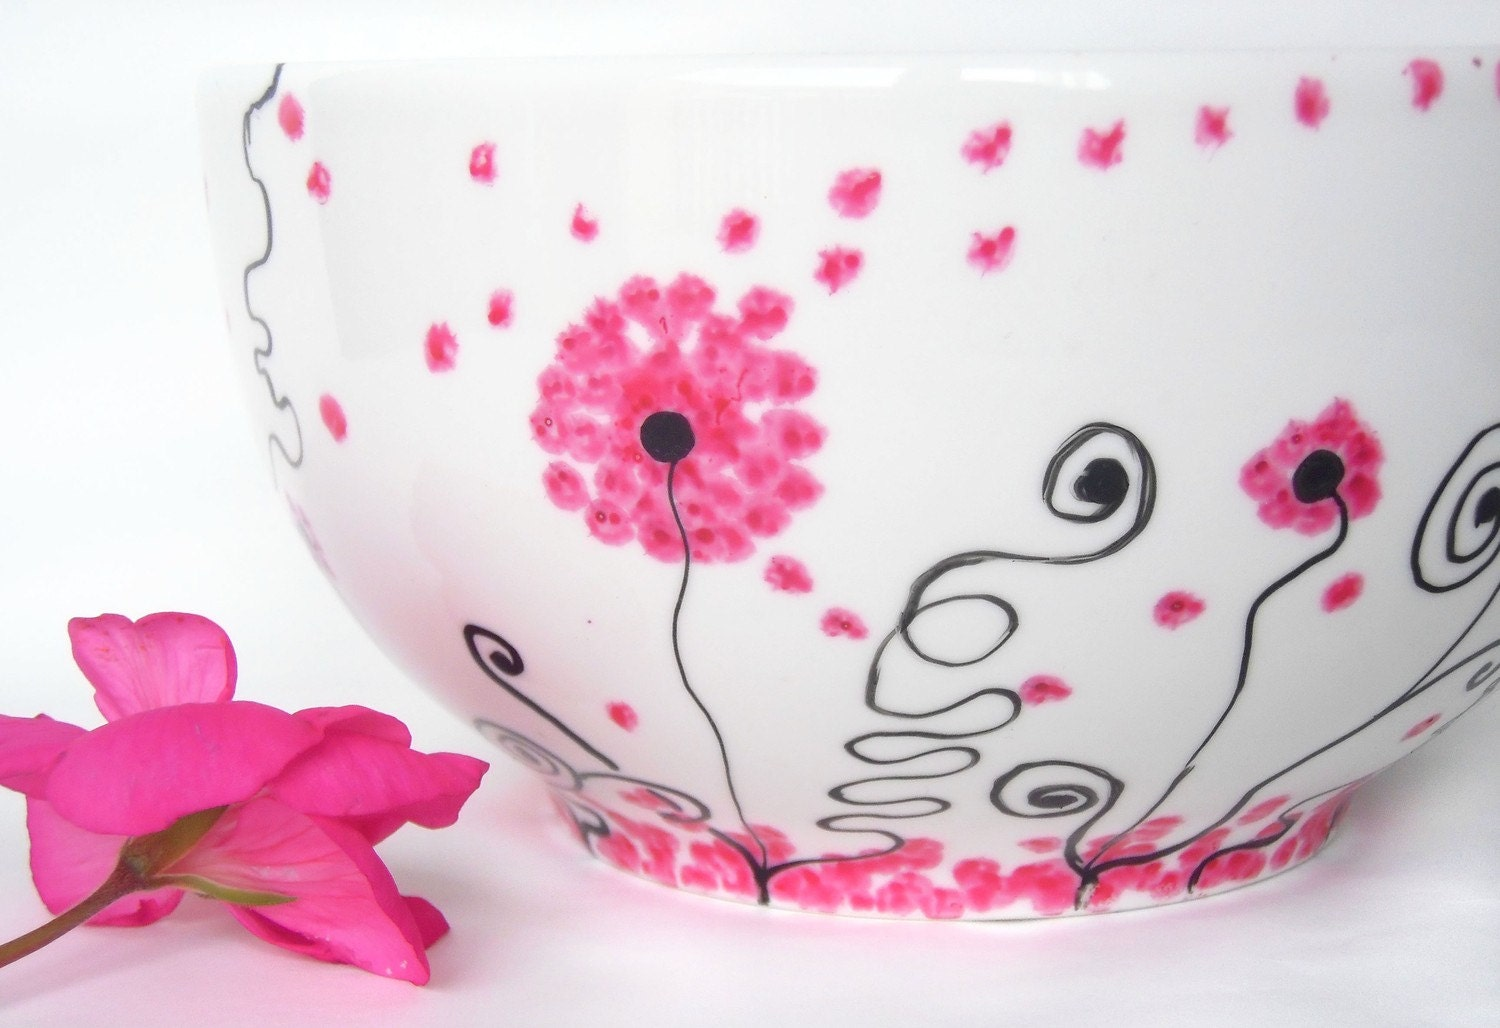 Hand painted breakfast bowl Rosy dandelion in pink, black and white flowers